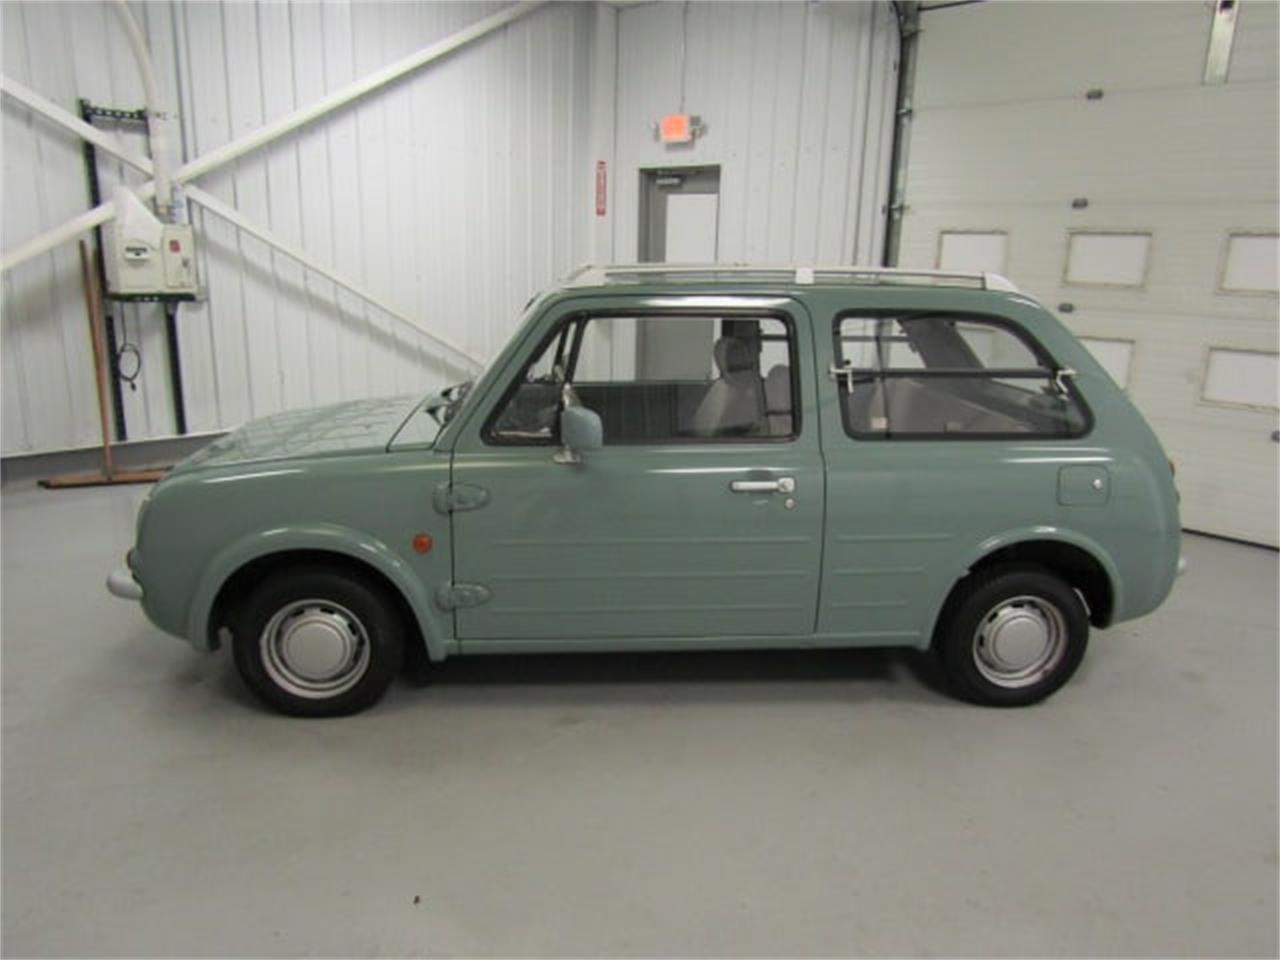 Large Picture of '90 Nissan Pao located in Virginia - $9,967.00 Offered by Duncan Imports & Classic Cars - LI63